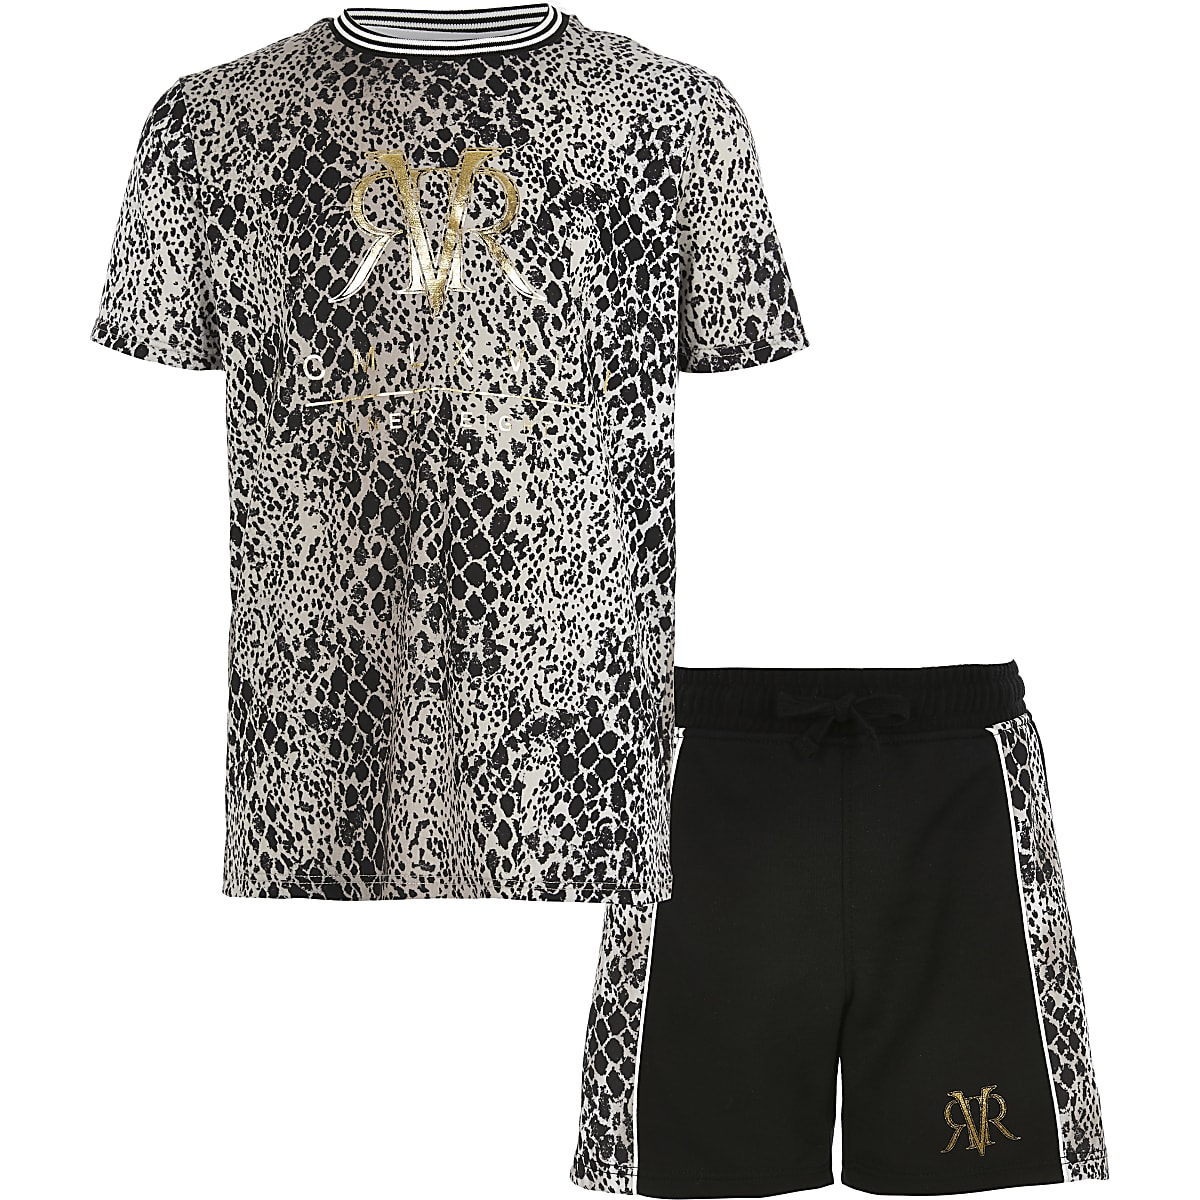 Boys brown snake print T-shirt outfit